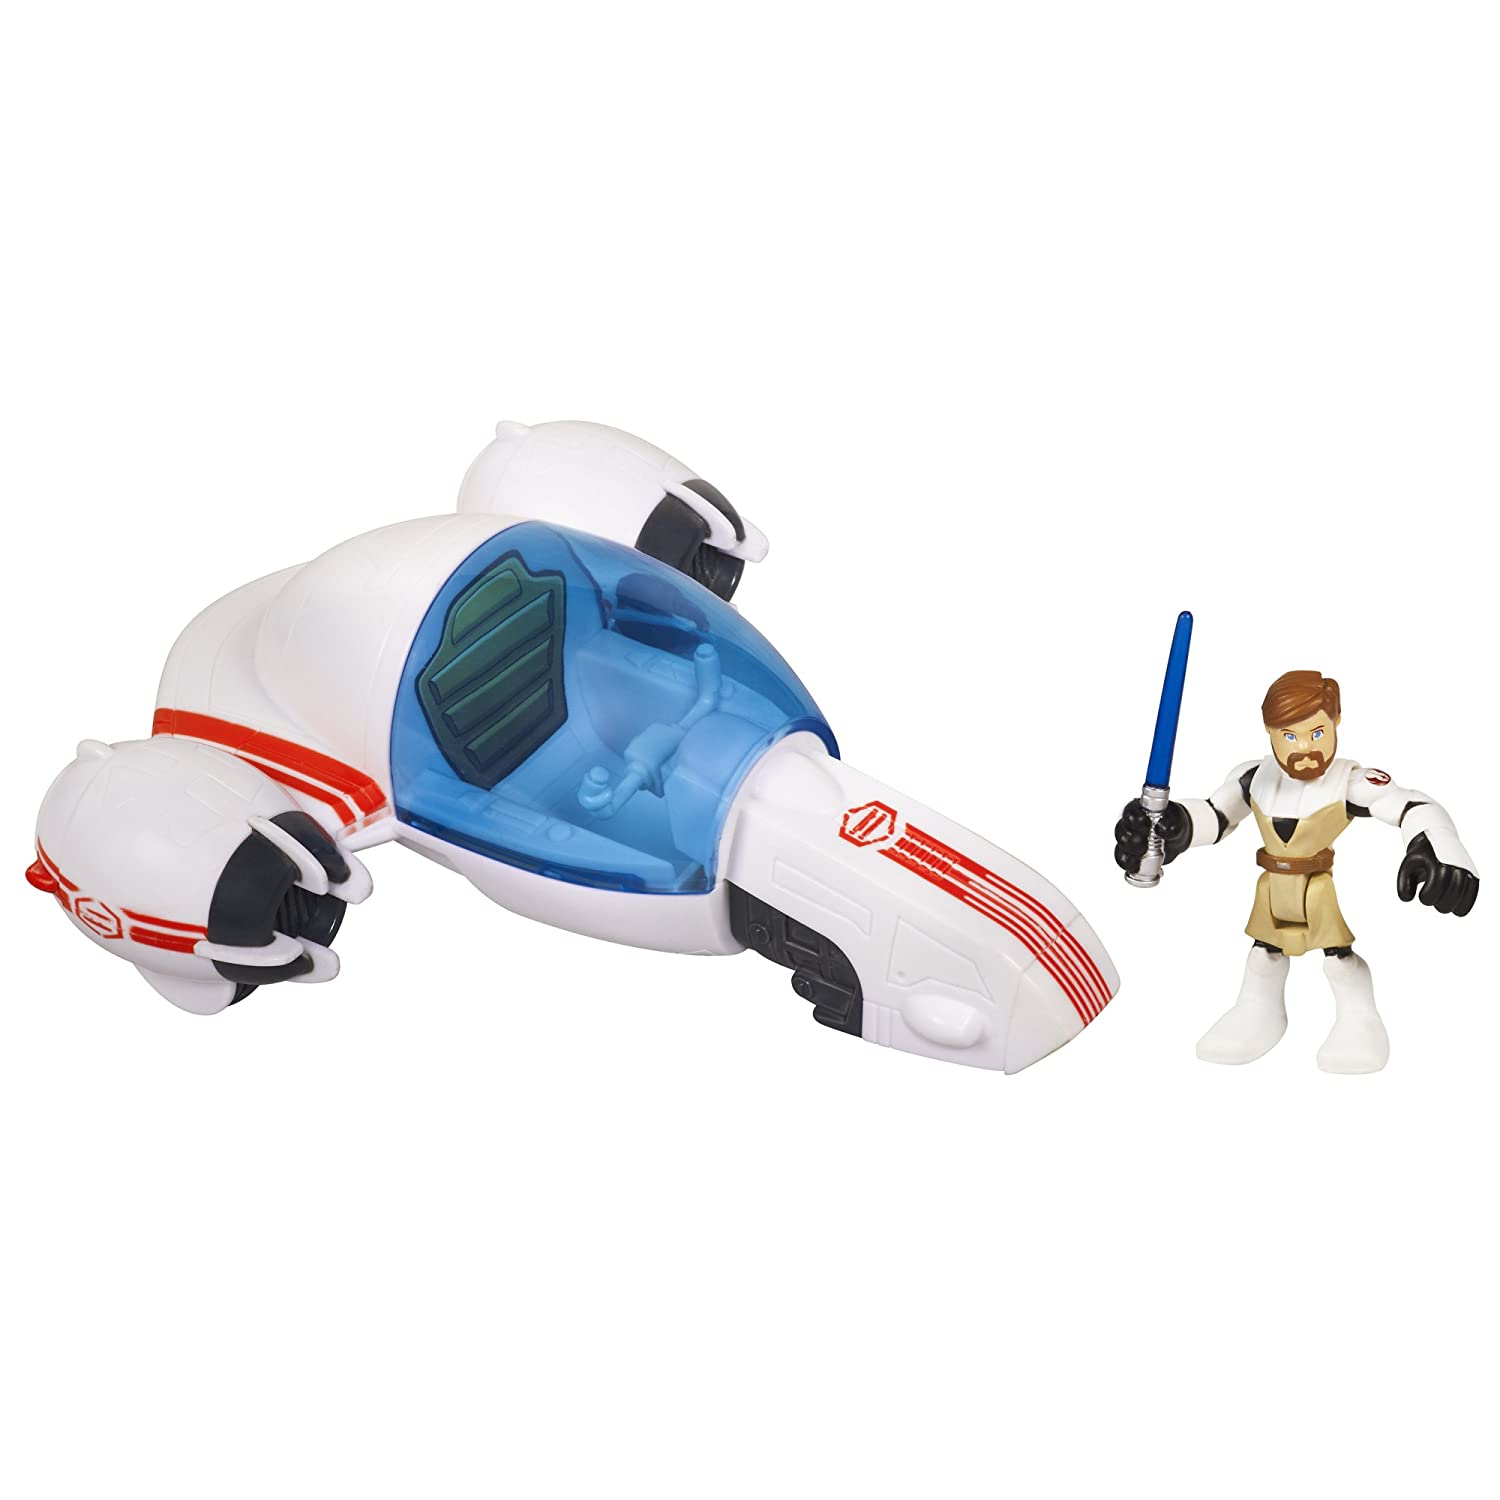 Star Wars Jedi Force Playskool Heroes Freeco Bike with Obi-Wan Kenobi Set Hasbro 32987